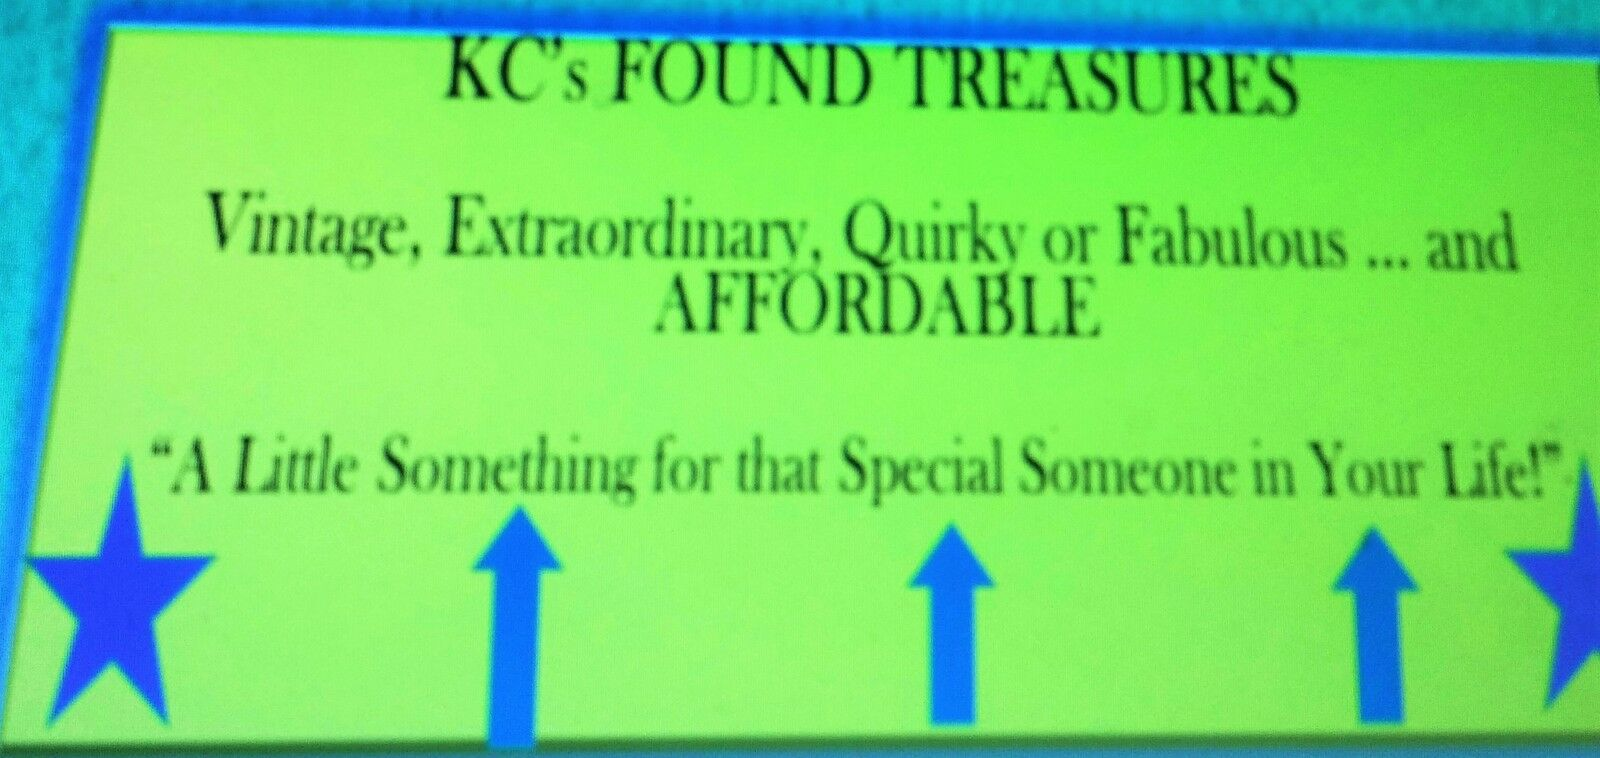 KCsFoundTreasures